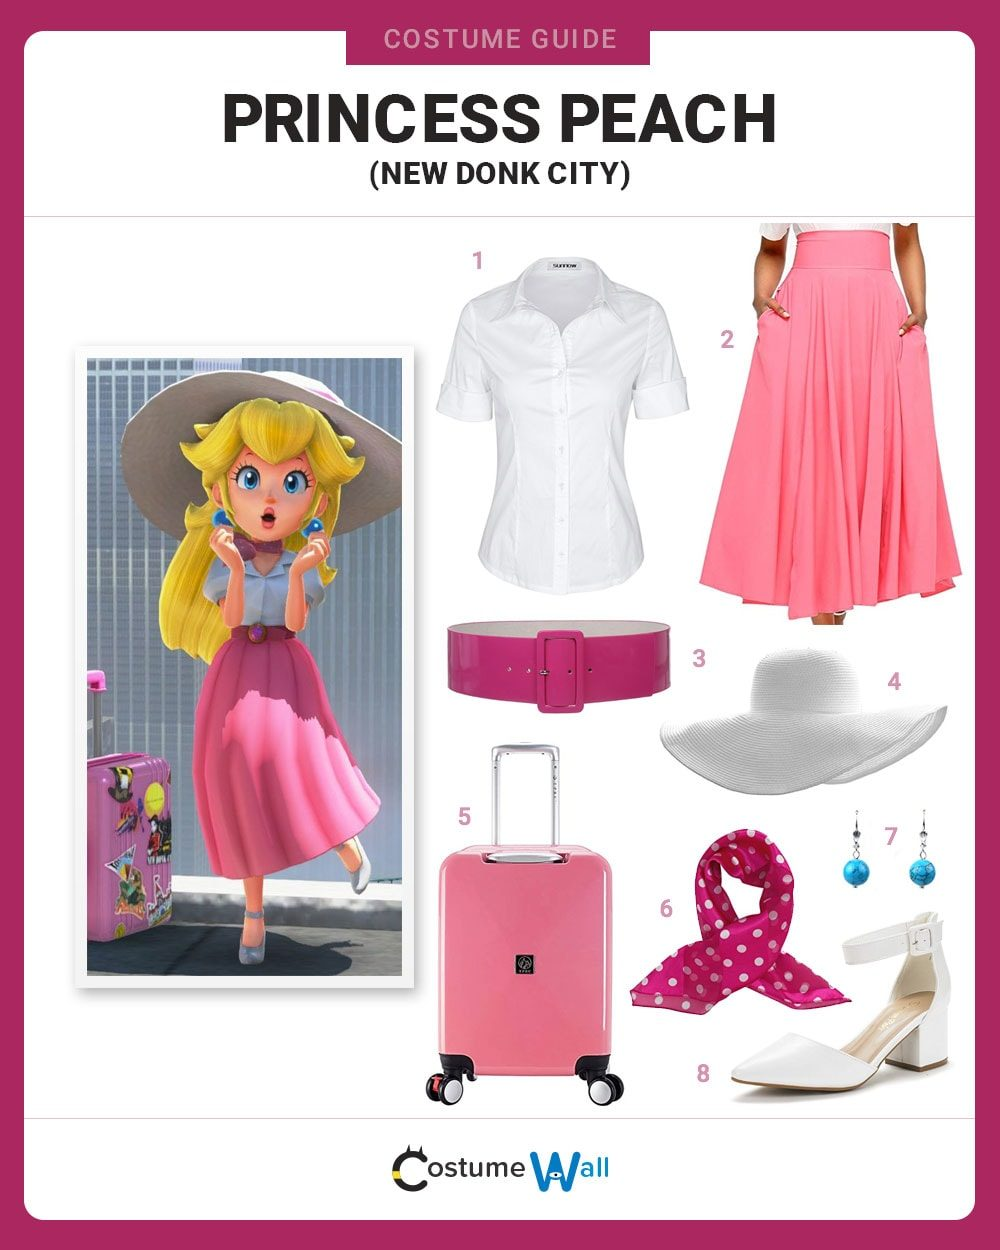 Princess Peach Costume Guide